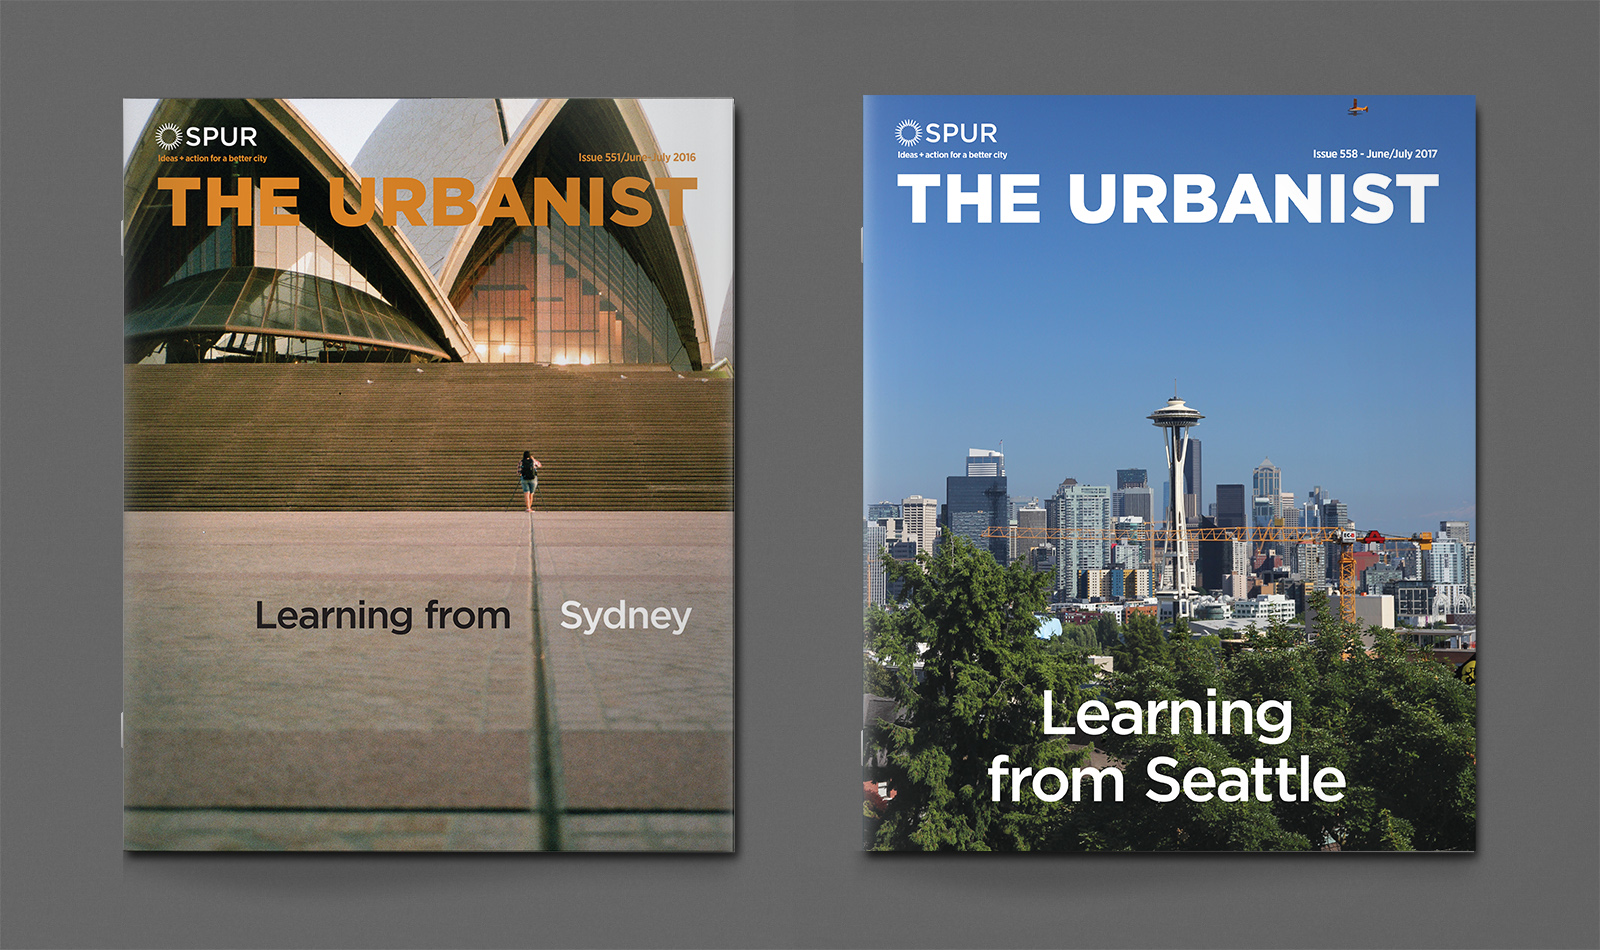 urbanist-spur-covers-2016-2017-new